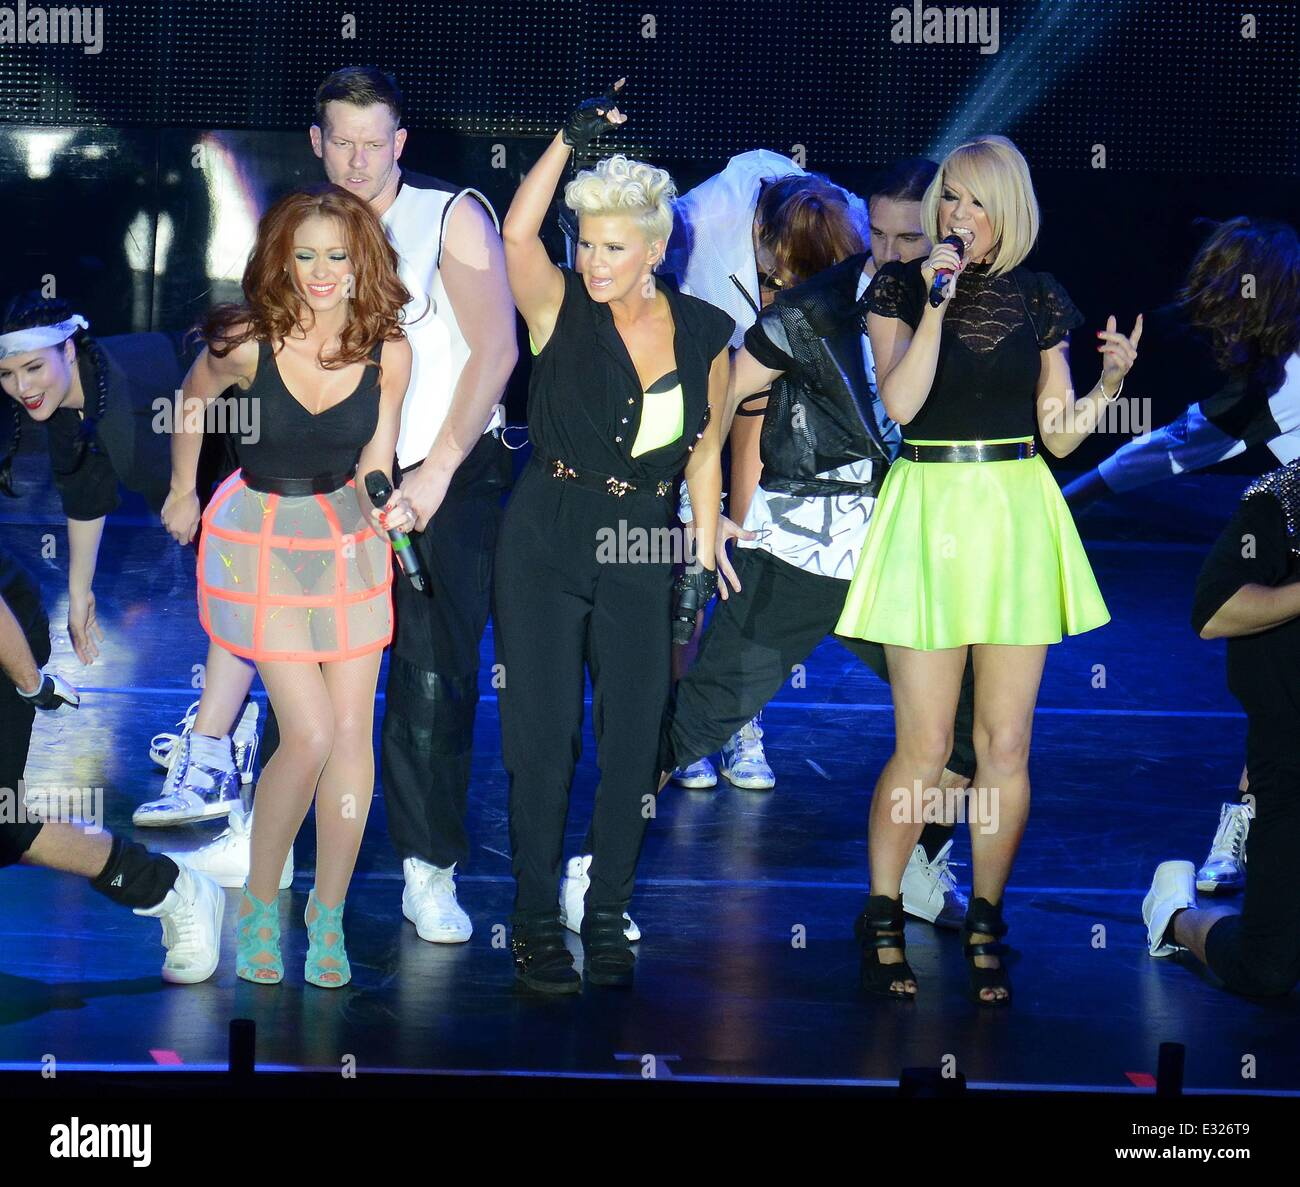 The Big Reunion Tour At The 02 Featuring Natasha Hamilton Kerry Stock Photo Alamy